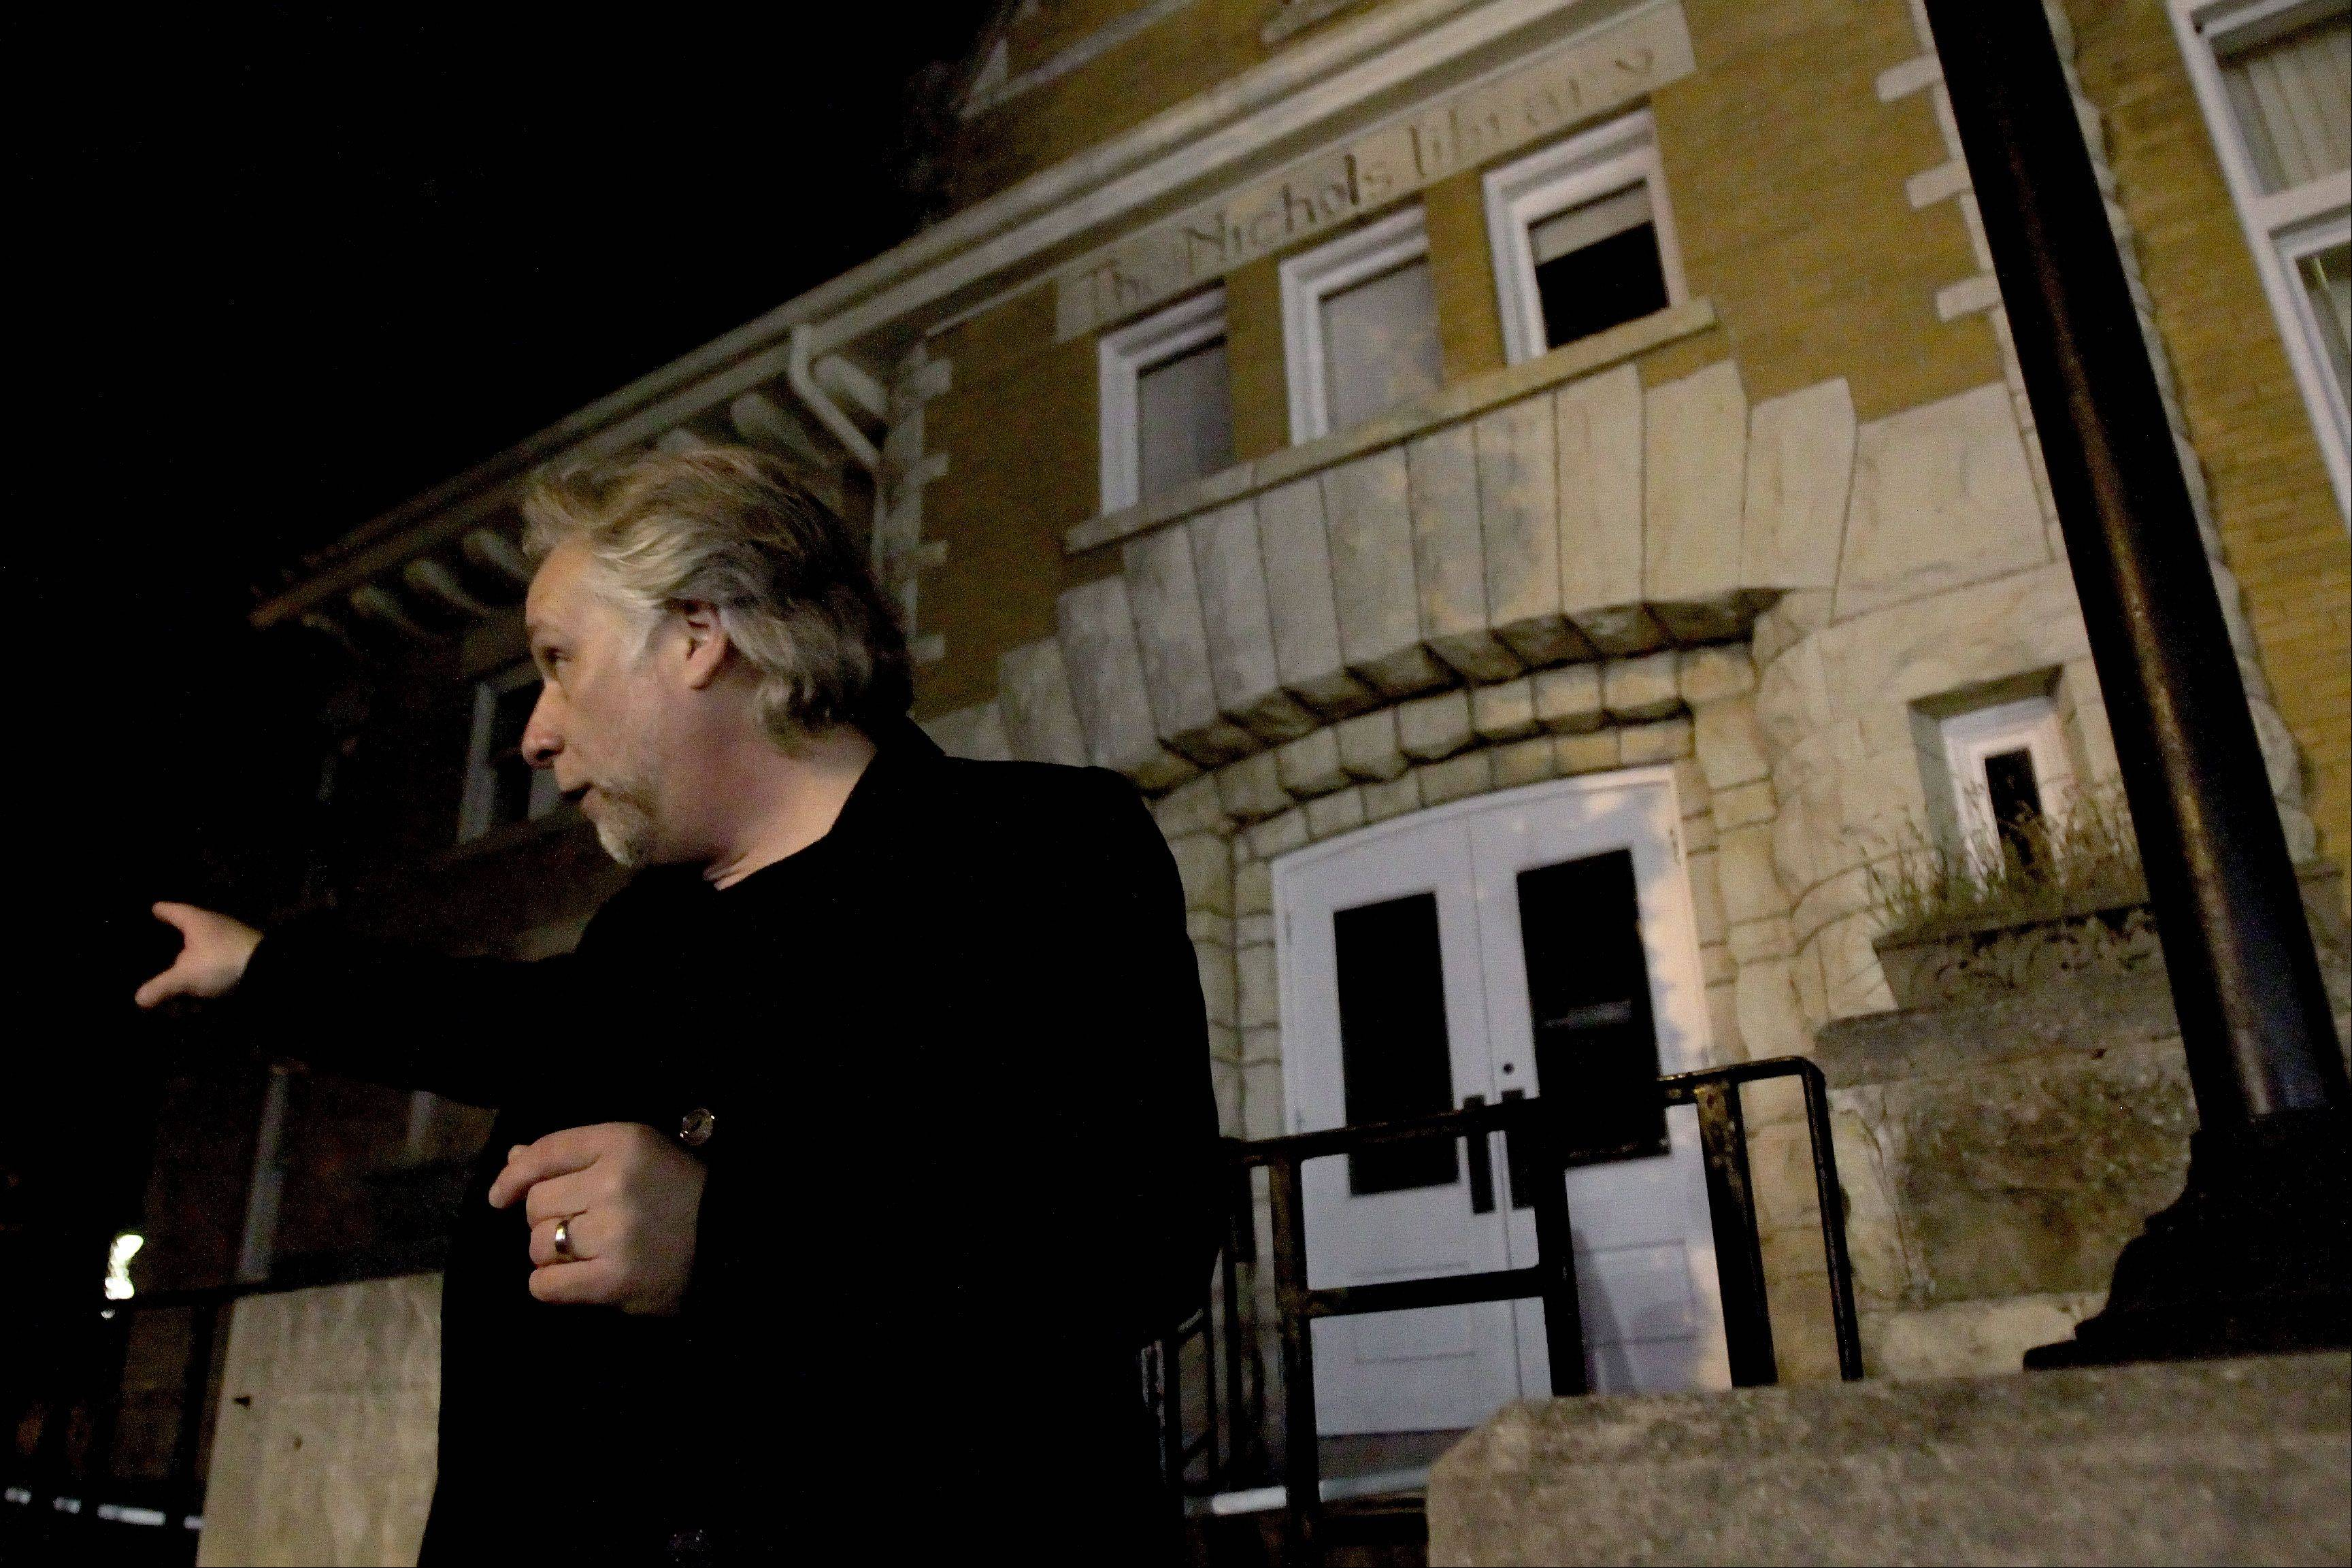 Kevin Frantz tells a ghost story outside the old Nichols Library as leads Naperville's Official Ghost Tour.